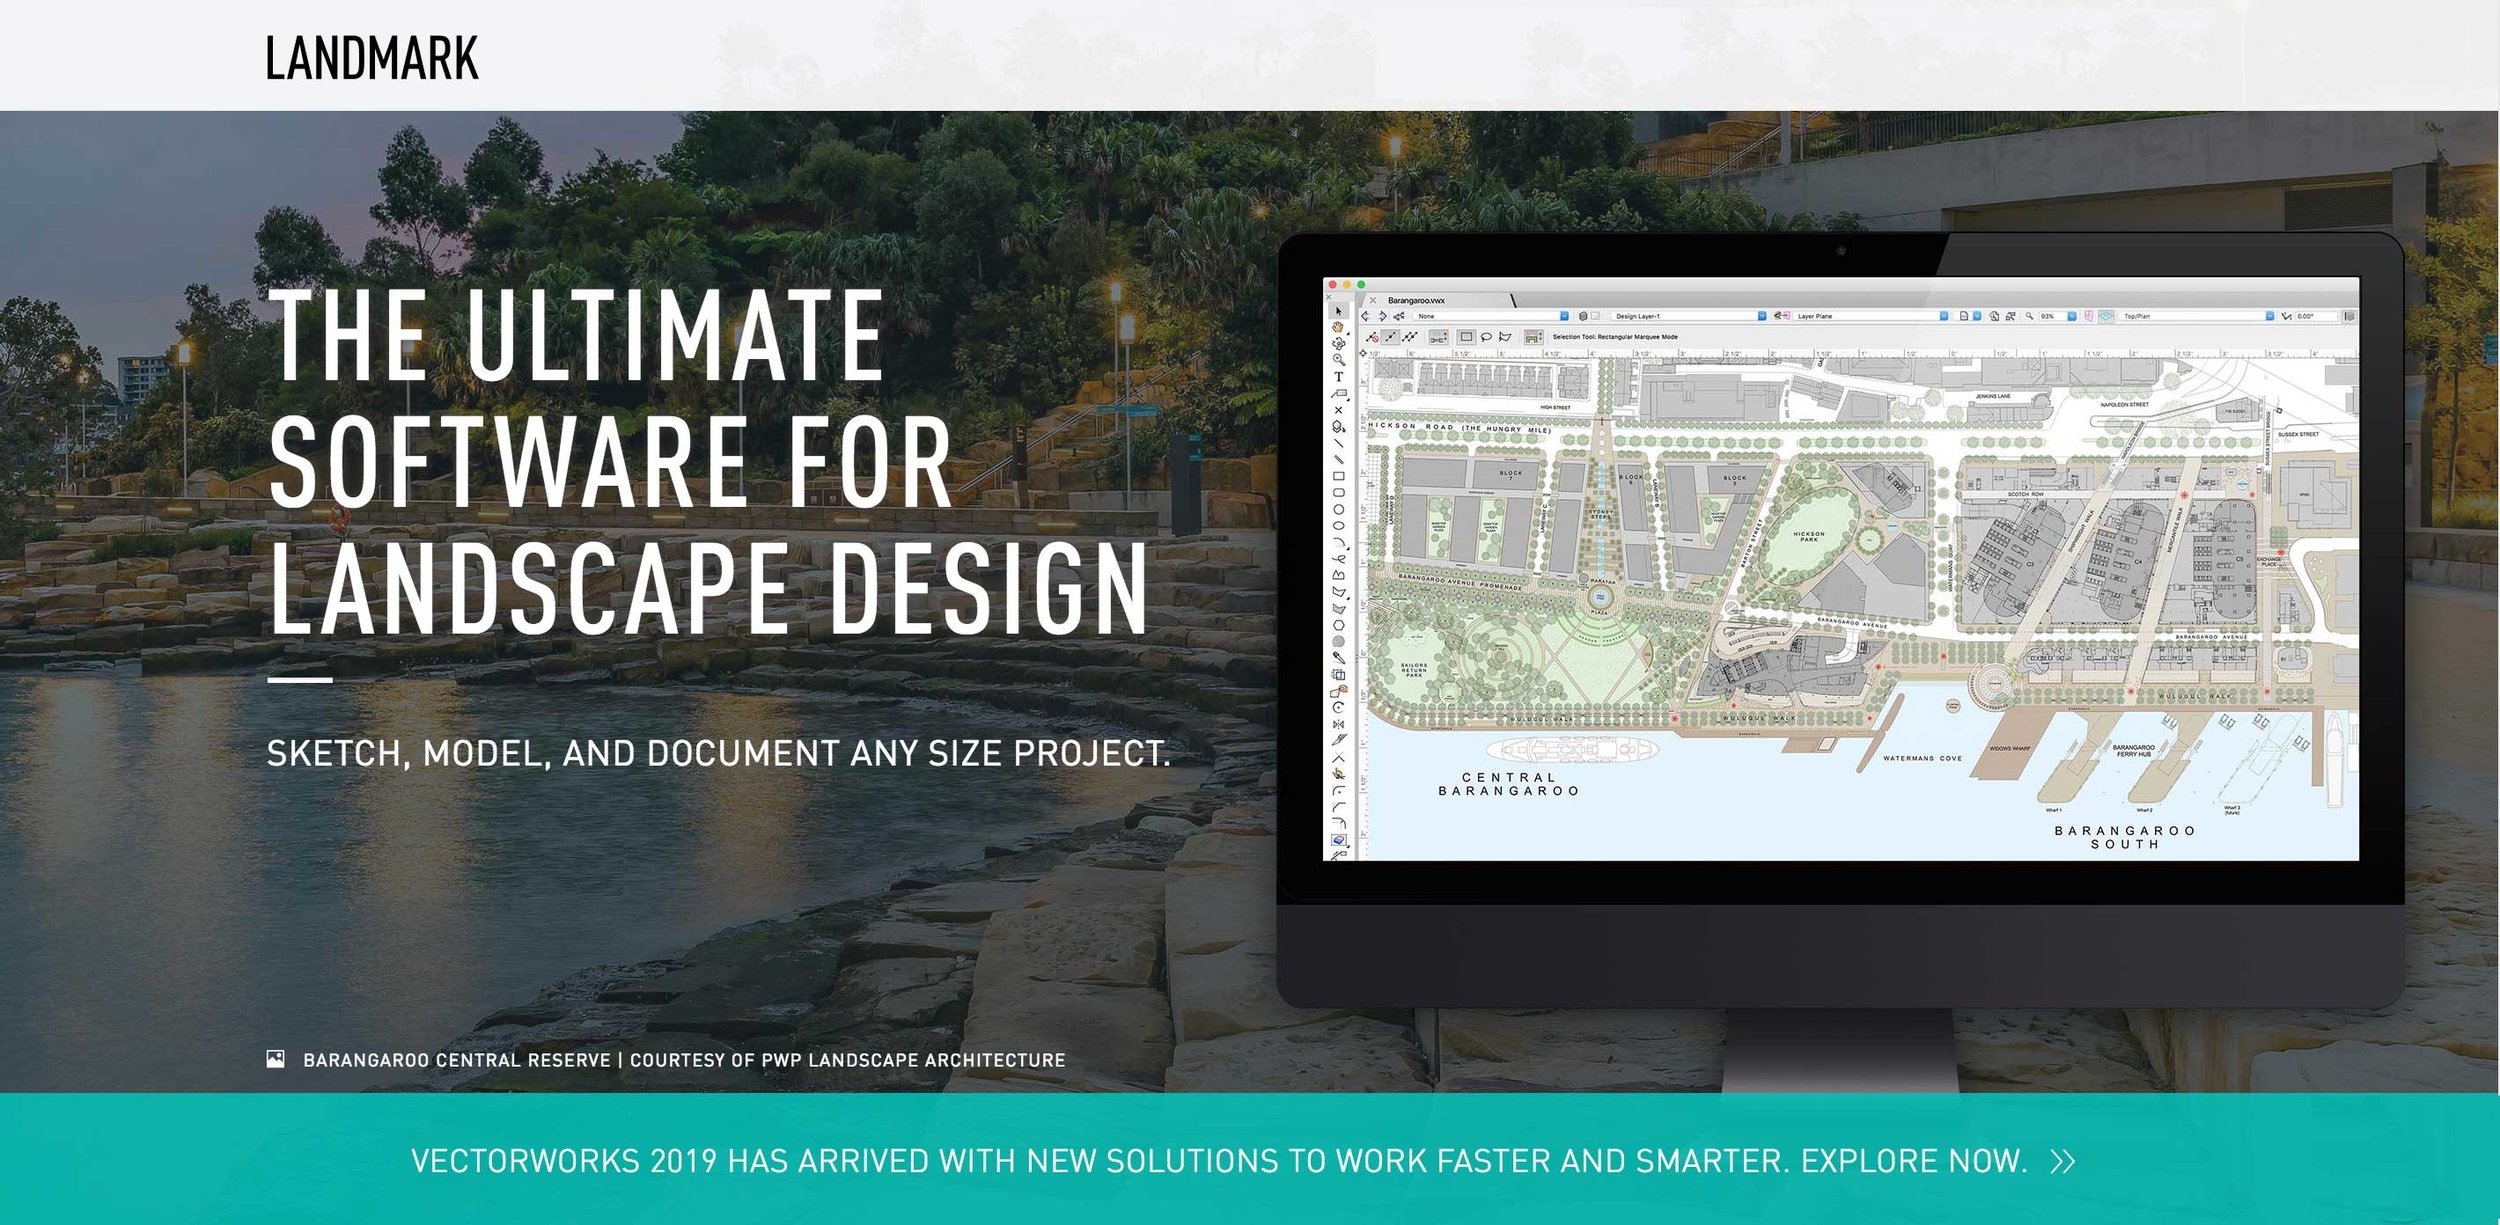 _Vectorworks_Landmark___The_Ultimate_Software_for_Landscape_Design.jpg